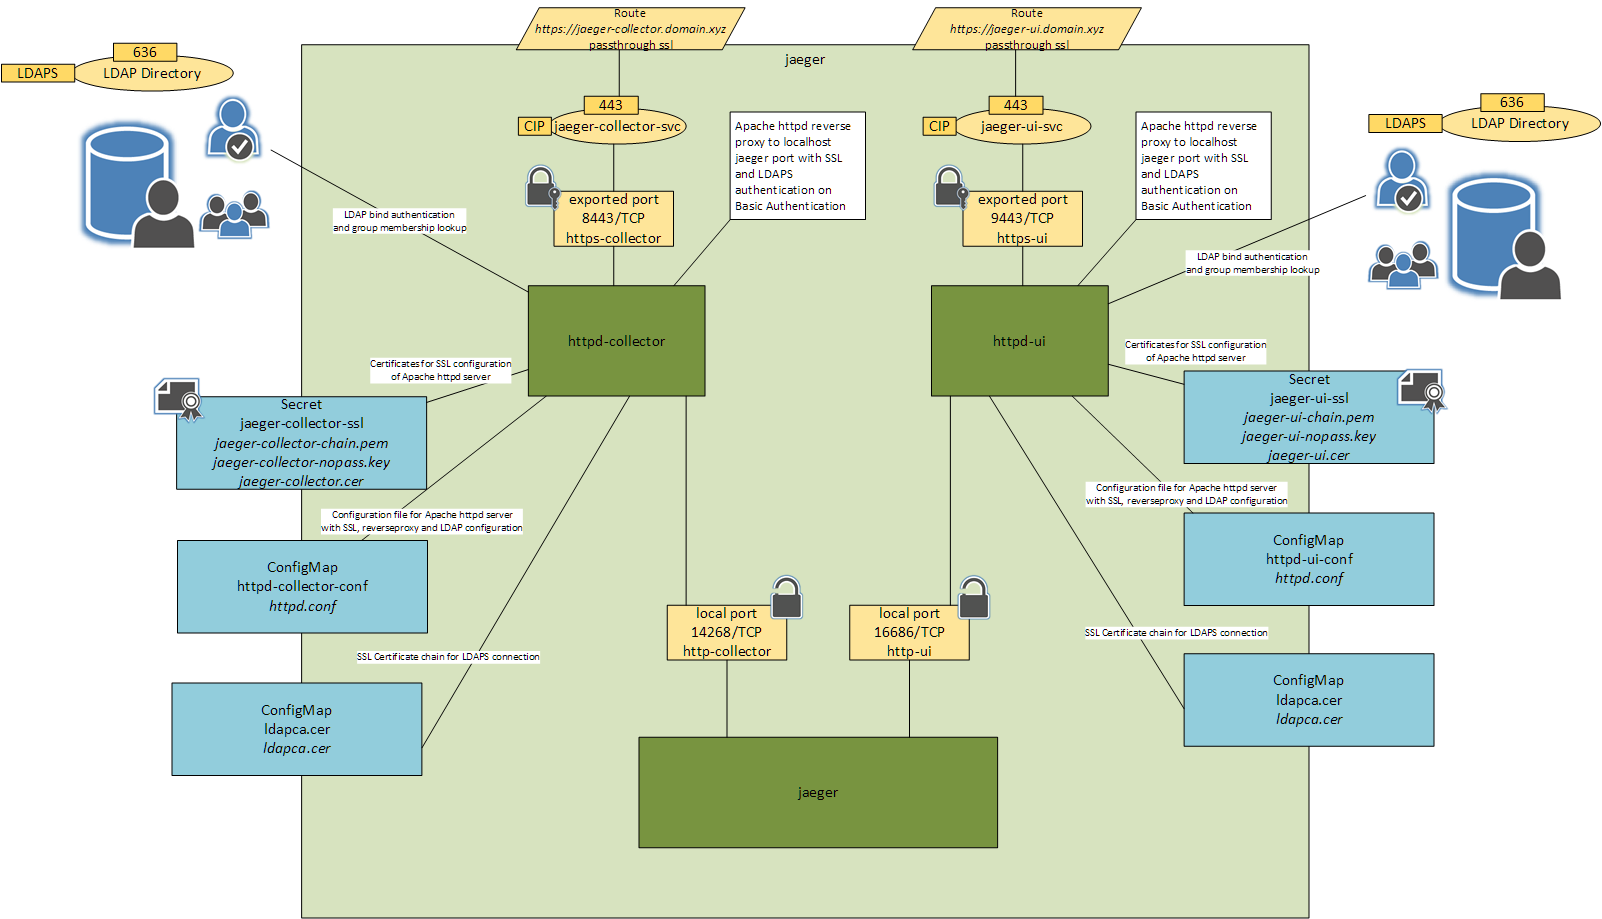 Secure Architecture For Jaeger With Apache Httpd Reverse Proxy On